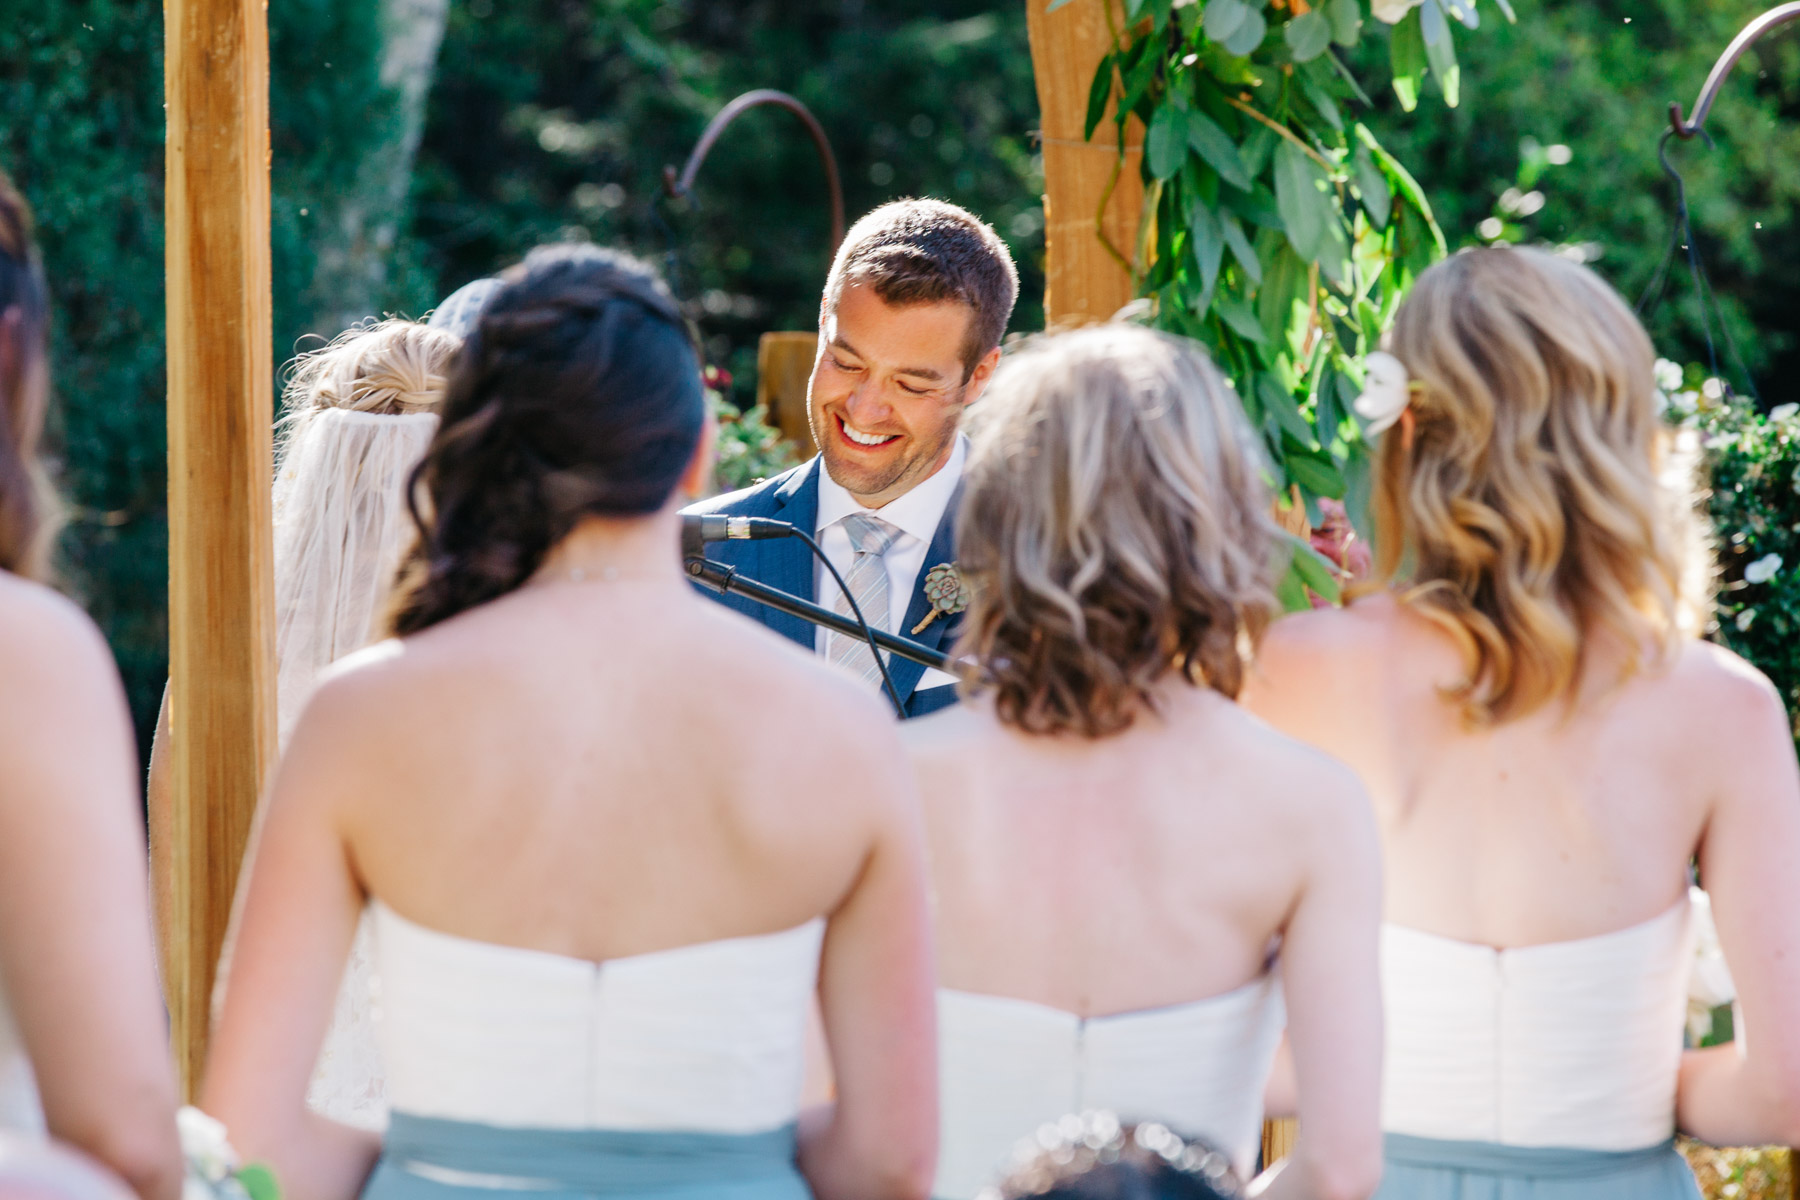 22-65colorado-mountain-wedding-photographer-denver-colorado-mountain-weddings-intimate-weddings-destination-colorado-rocky-mountain-wedding-photographer_mount_princeton_mountain_wedding_photographer_jessica&geoff0450.jpg